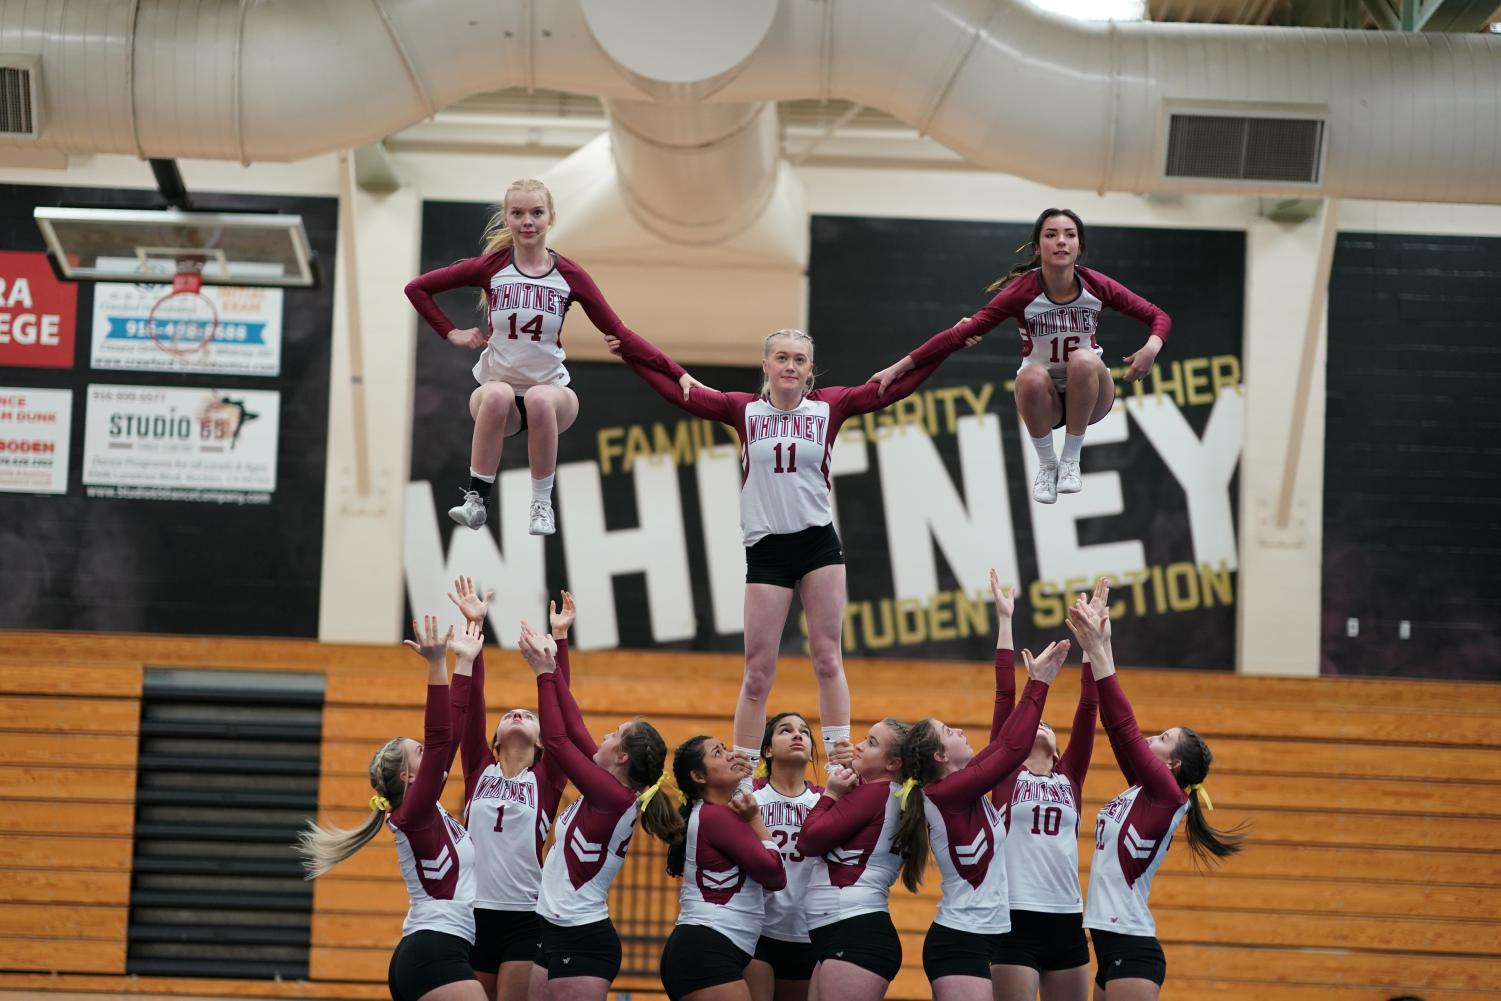 During a league game against Rocklin March 28, Kendra Roberson, Reese Phillips and Elyse Sheek stunt with their groups in Level 2 of pyramids and tosses. They won 15-14. Photo by Geoffrey Clarion.